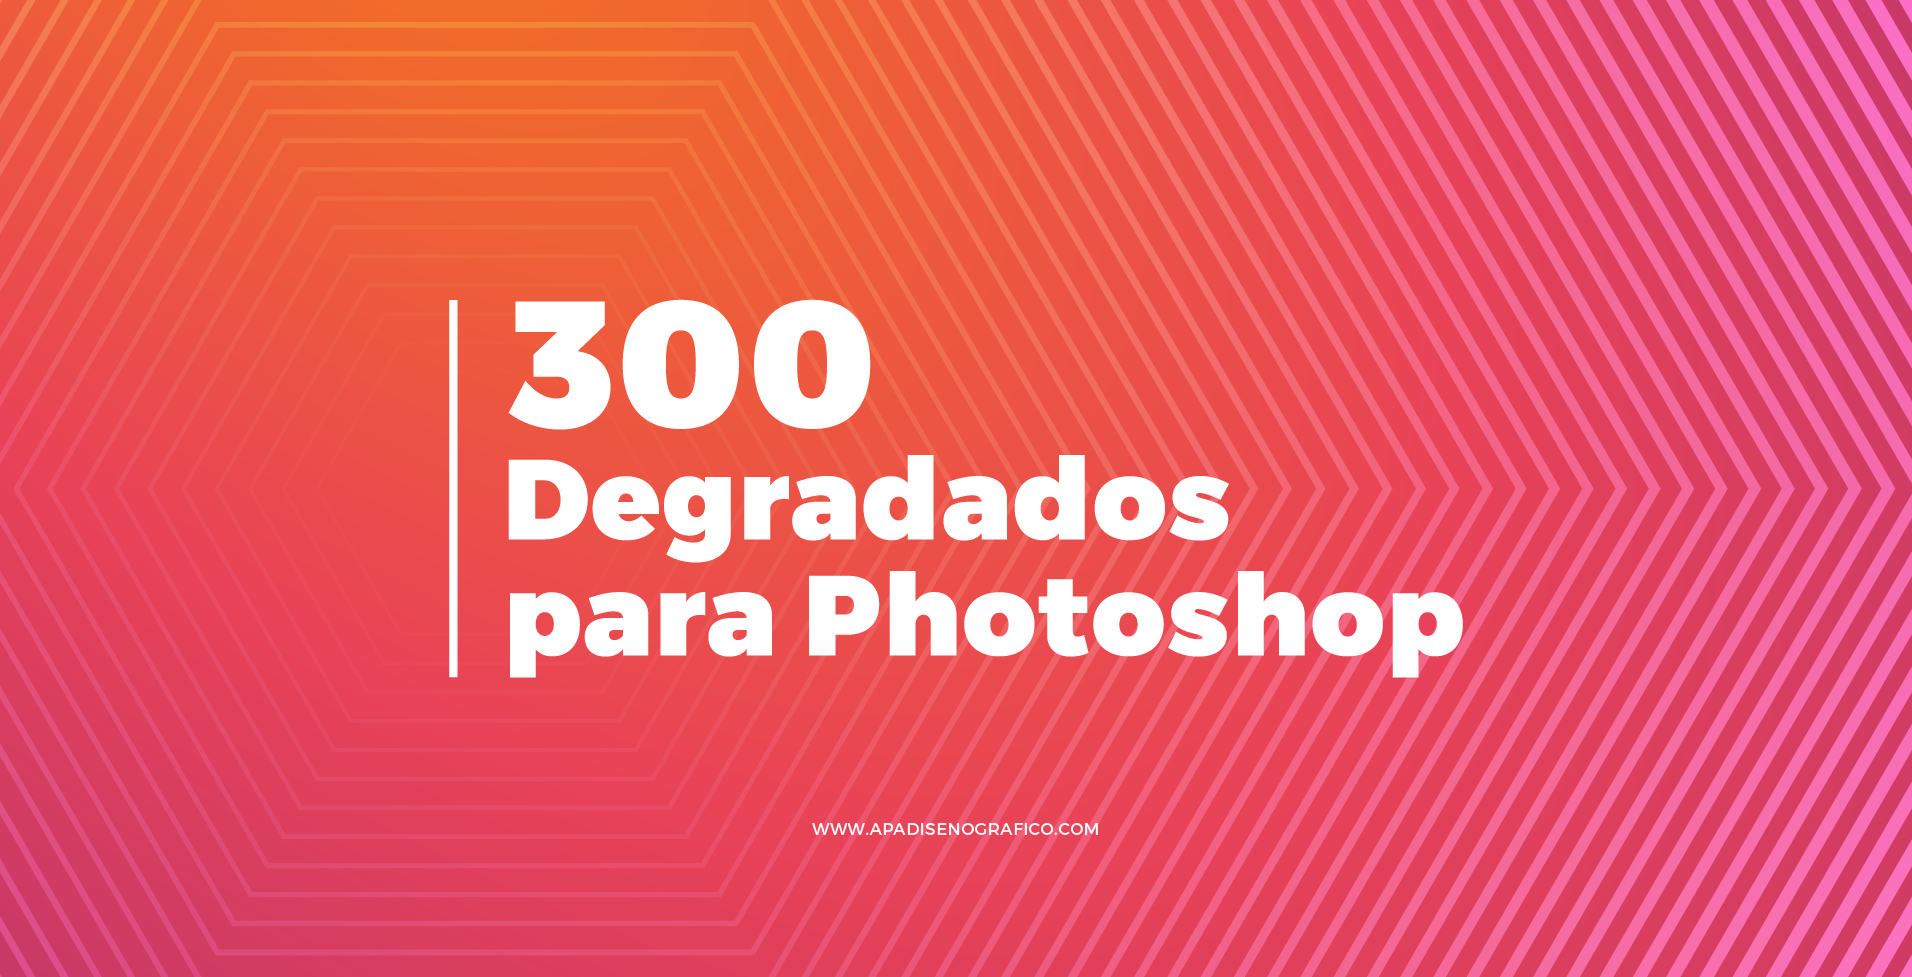 300 degradados de colores gratuitos para adobe photoshop gratis